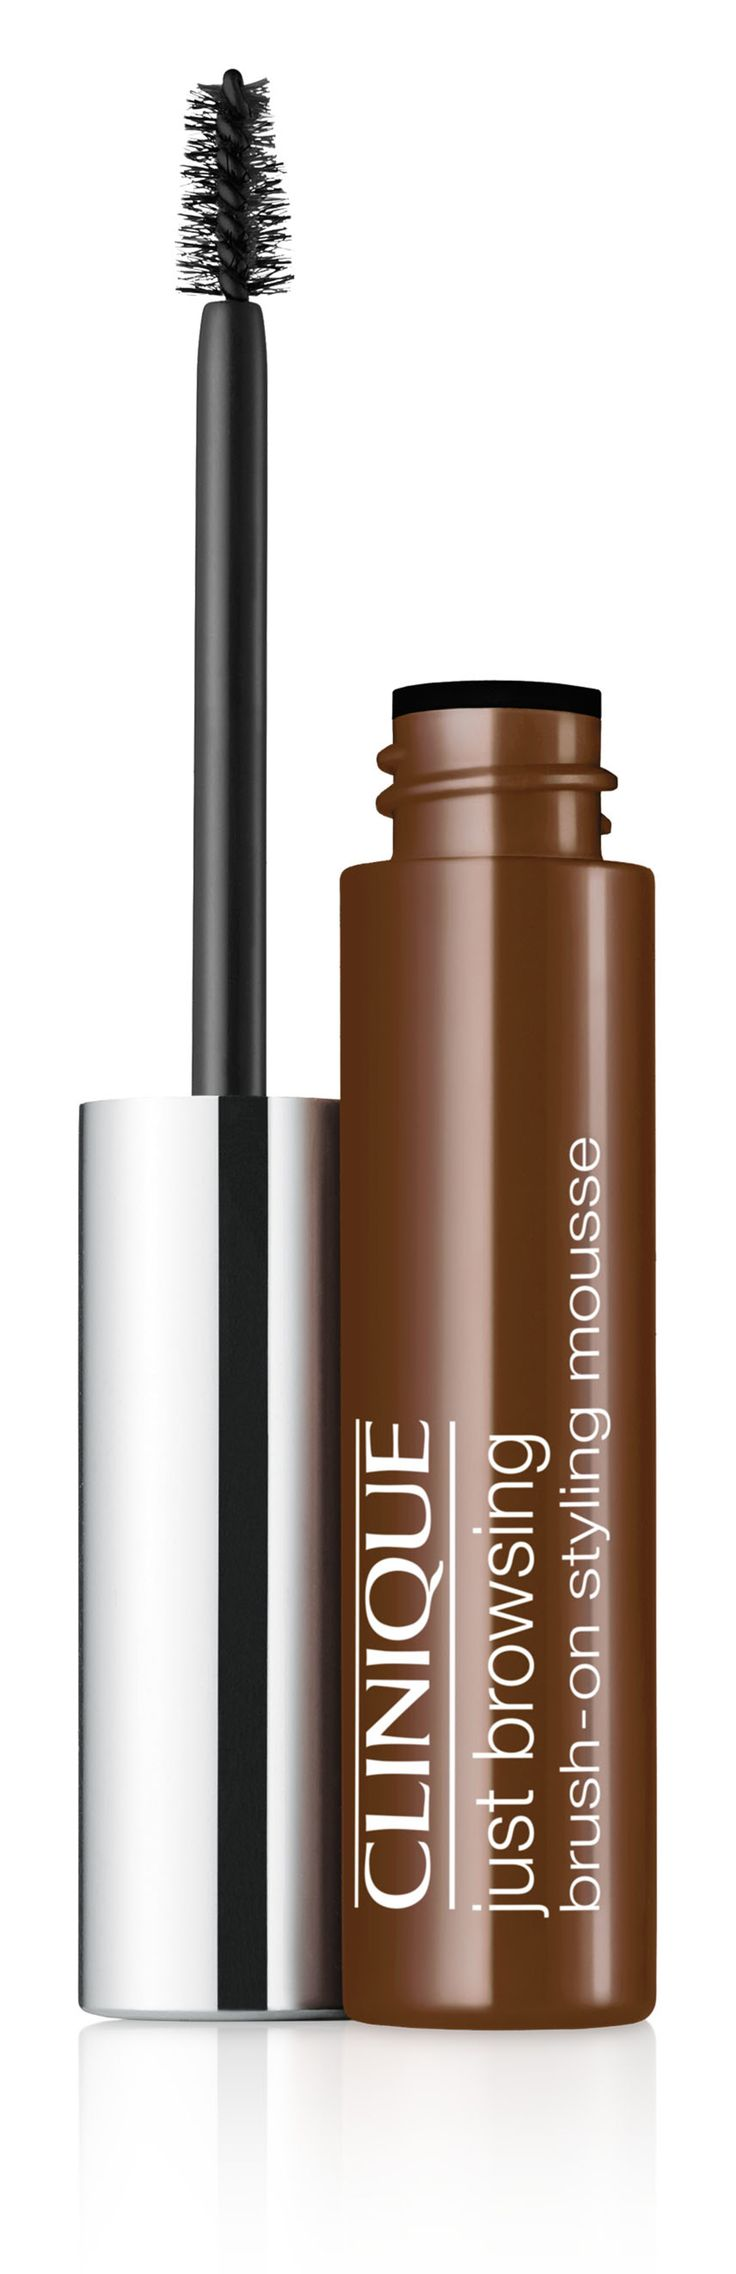 Fall Makeup Trend: Bold Brows. Get the look with Clinique Just Browsing Brush-On Styling Mousse in Deep Brown. 24-hour long-wearing brow mousse tints, tames, fills-in even the sparsest brows.